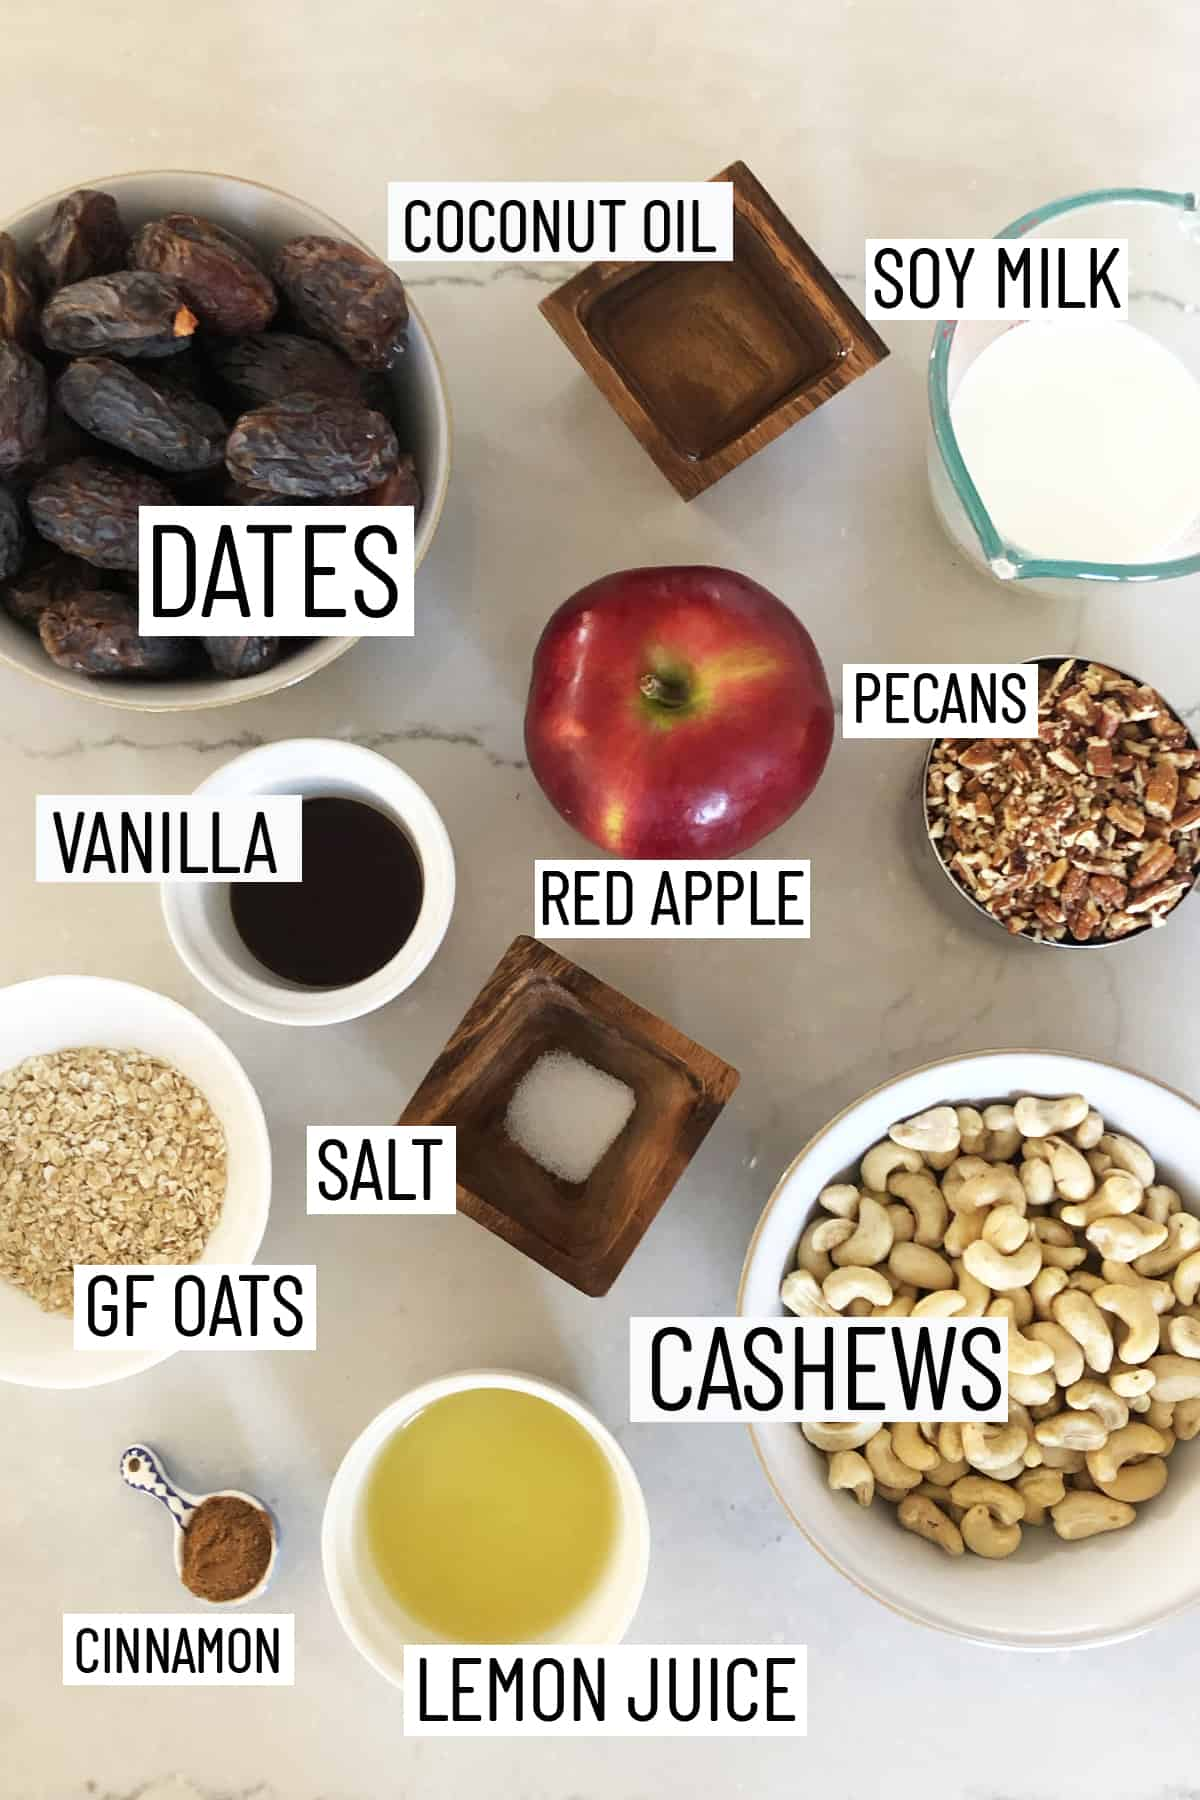 Flat lay image of portioned ingredients of raw vegan cheesecake including lemon juice, cinnamon, cashews, salt, oats, pecans, red apple, dates, vanilla, soy milk, and coconut oil.